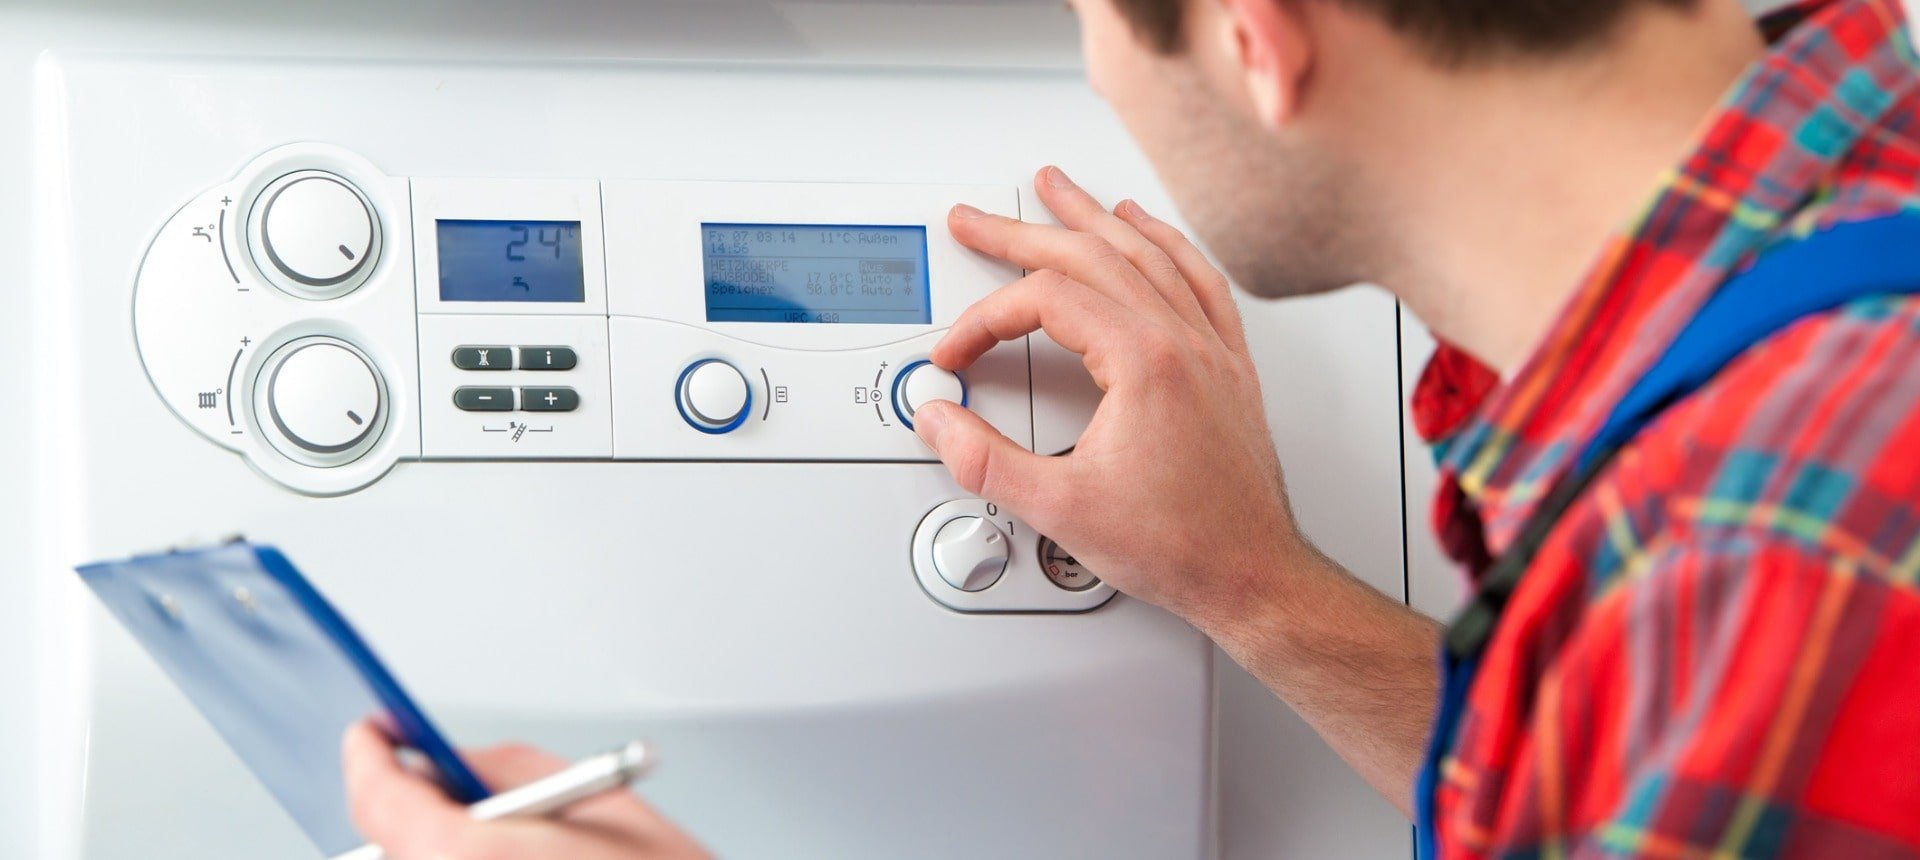 man-in-a-flannel-shirt-works-on-a-gas-boiler-picture-id482115591-min